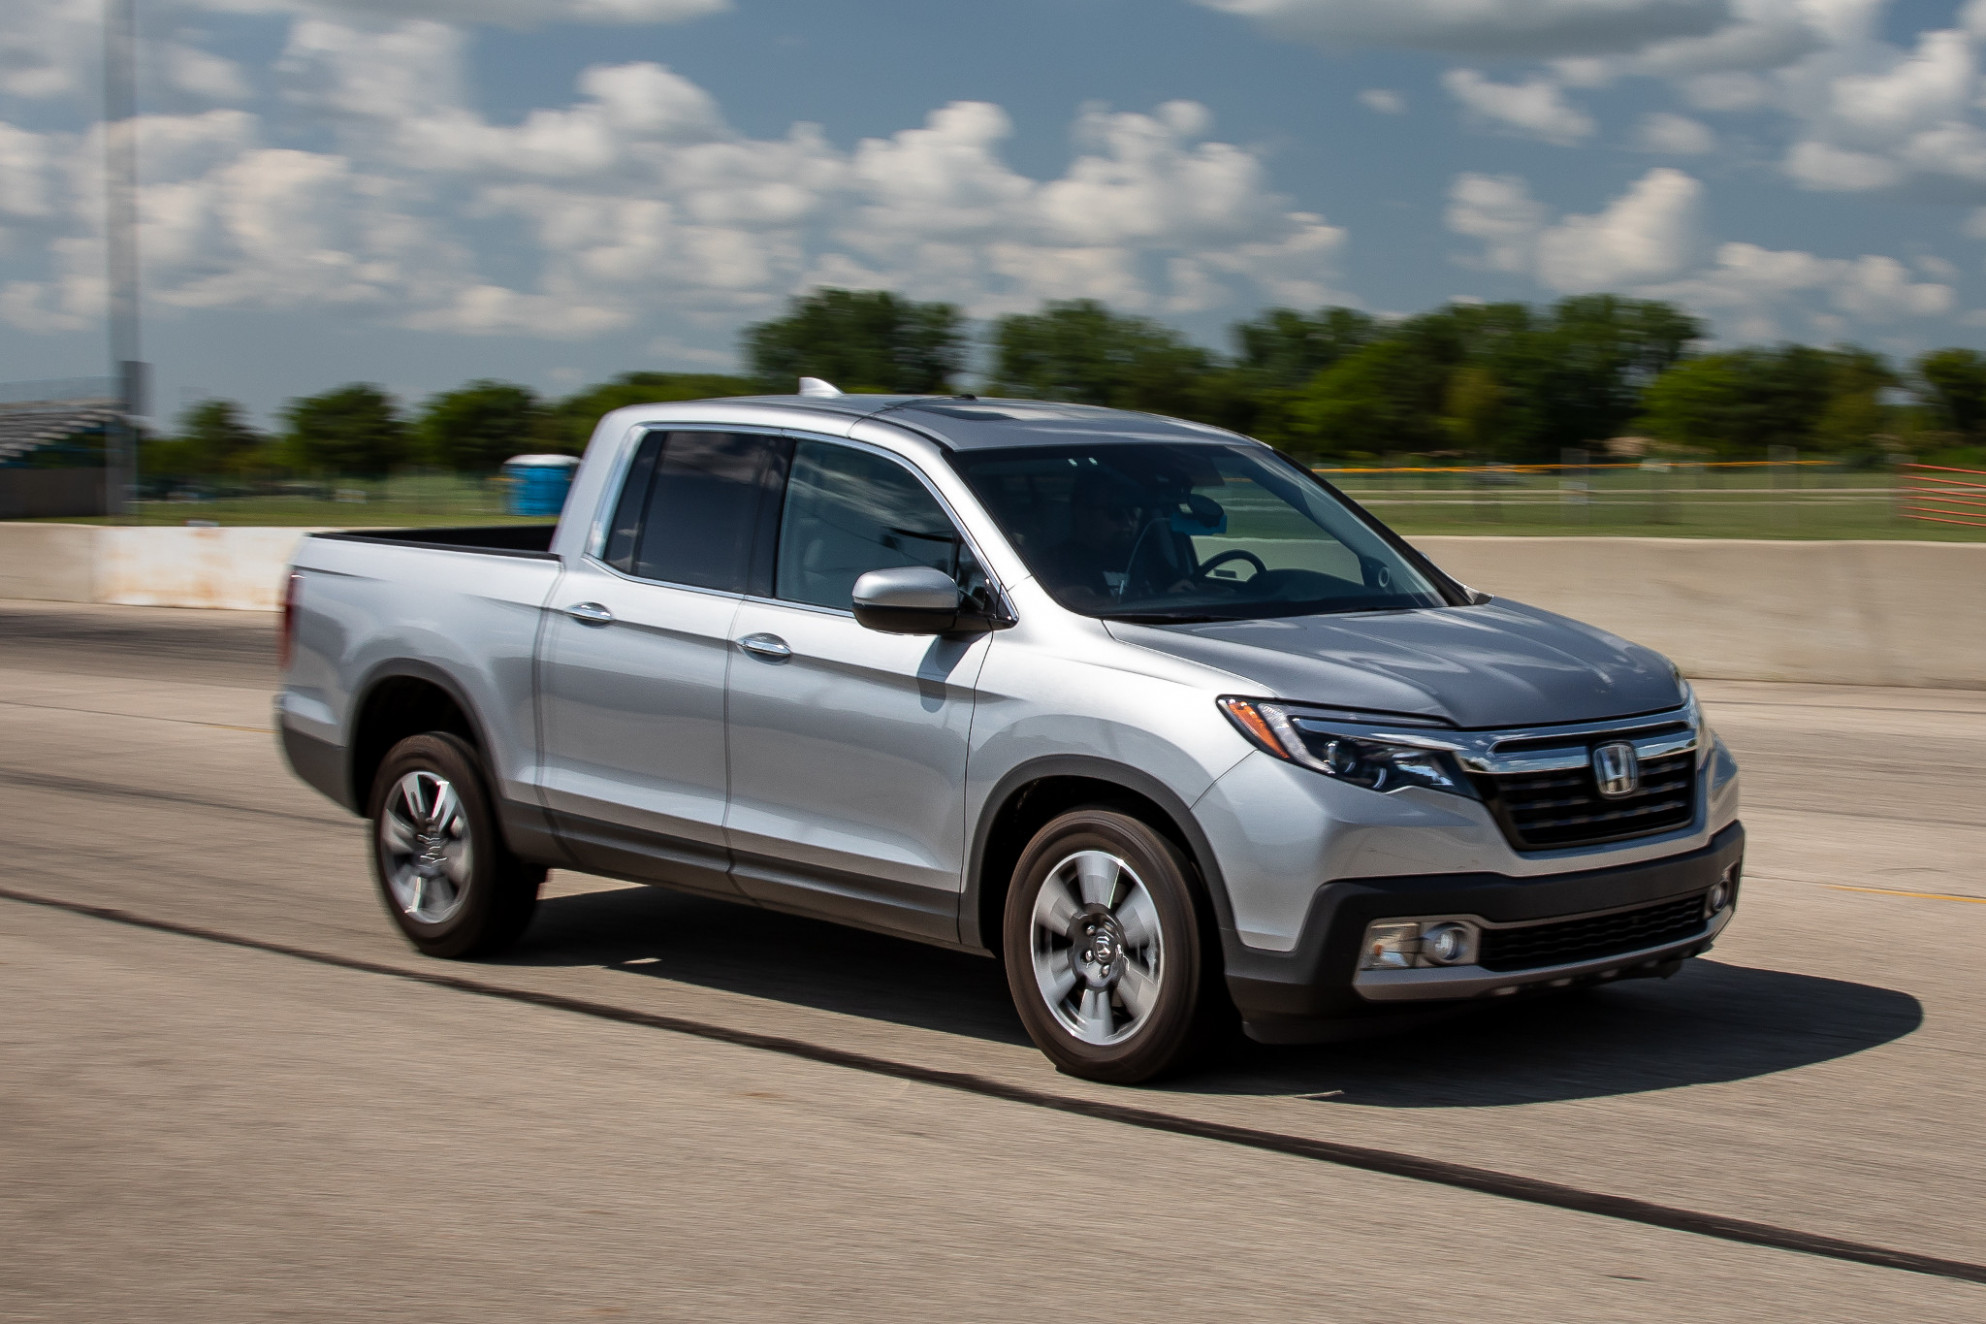 All the Pickup Truck News: Canyon and Ridgeline Reviewed, 7 ..